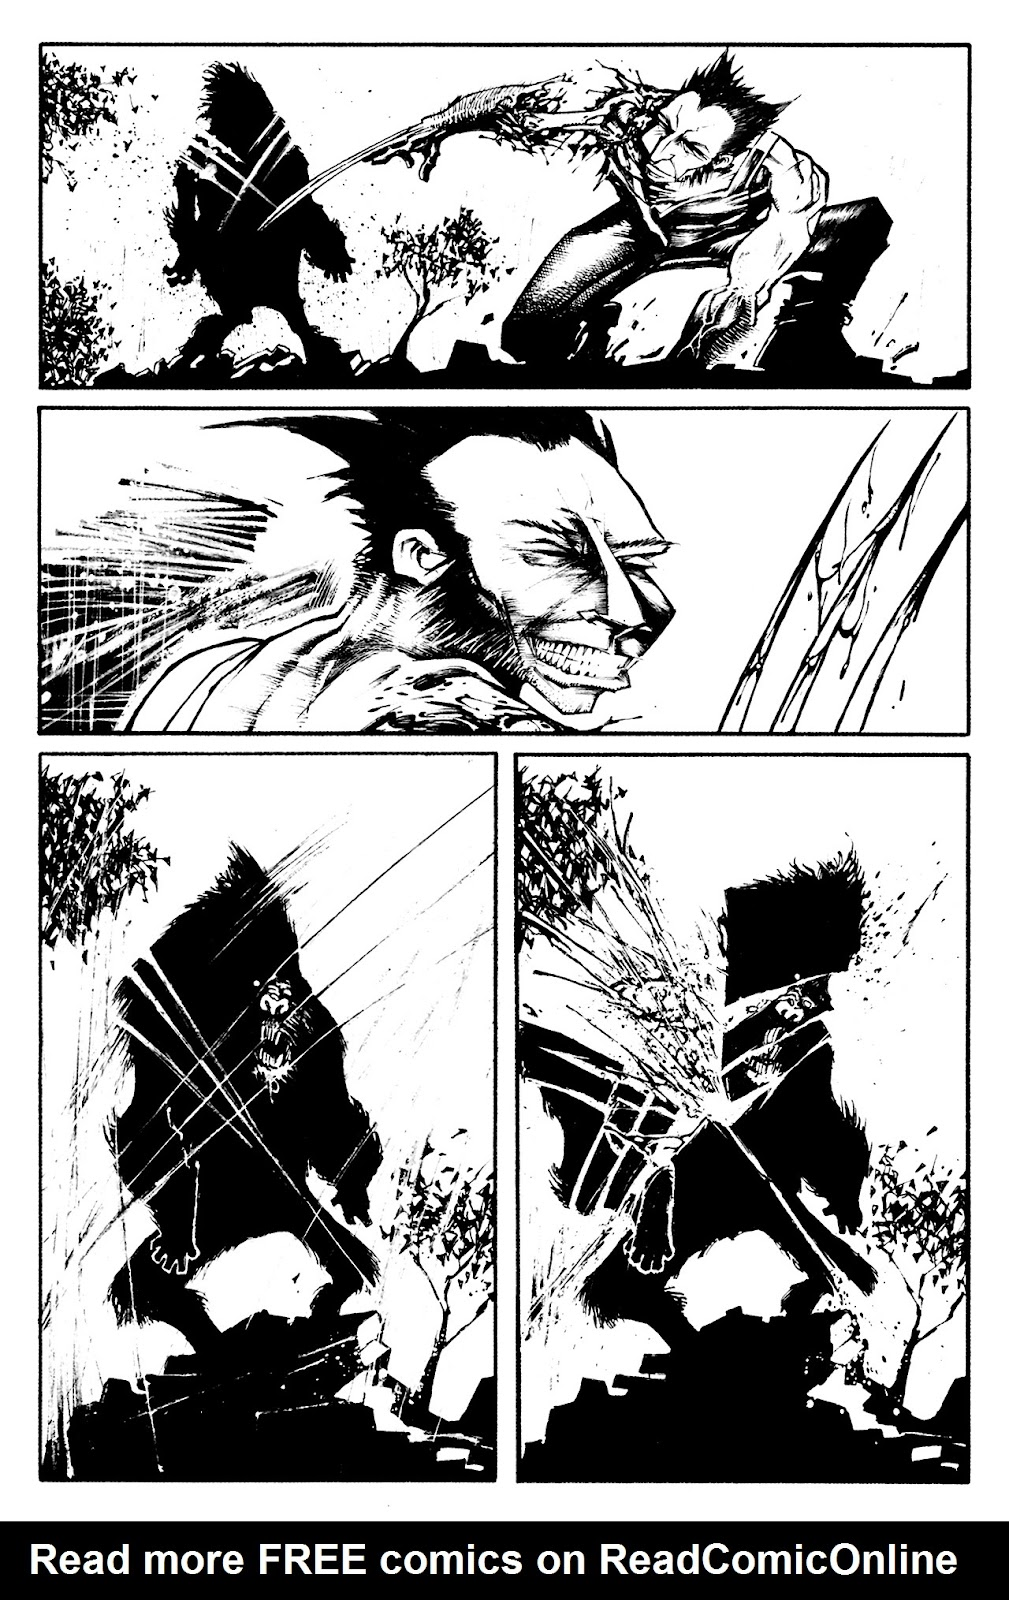 Read online Rampaging Wolverine comic -  Issue # Full - 44